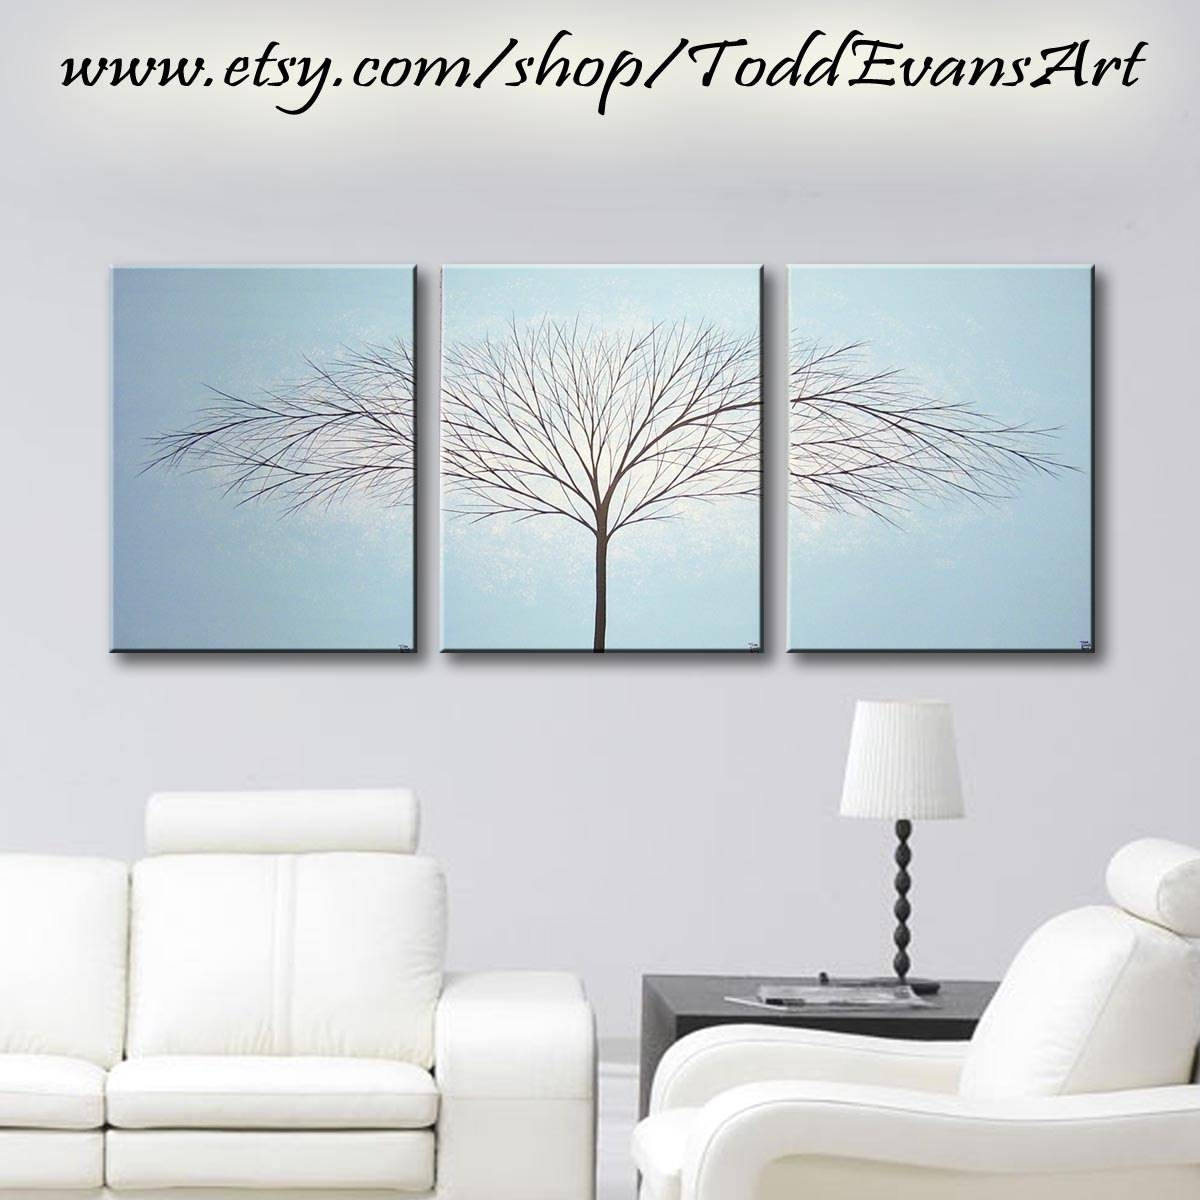 Tree Painting 3 Piece Wall Art Large Canvas Art Painting Regarding Most Current 3 Pc Canvas Wall Art Sets (View 12 of 20)